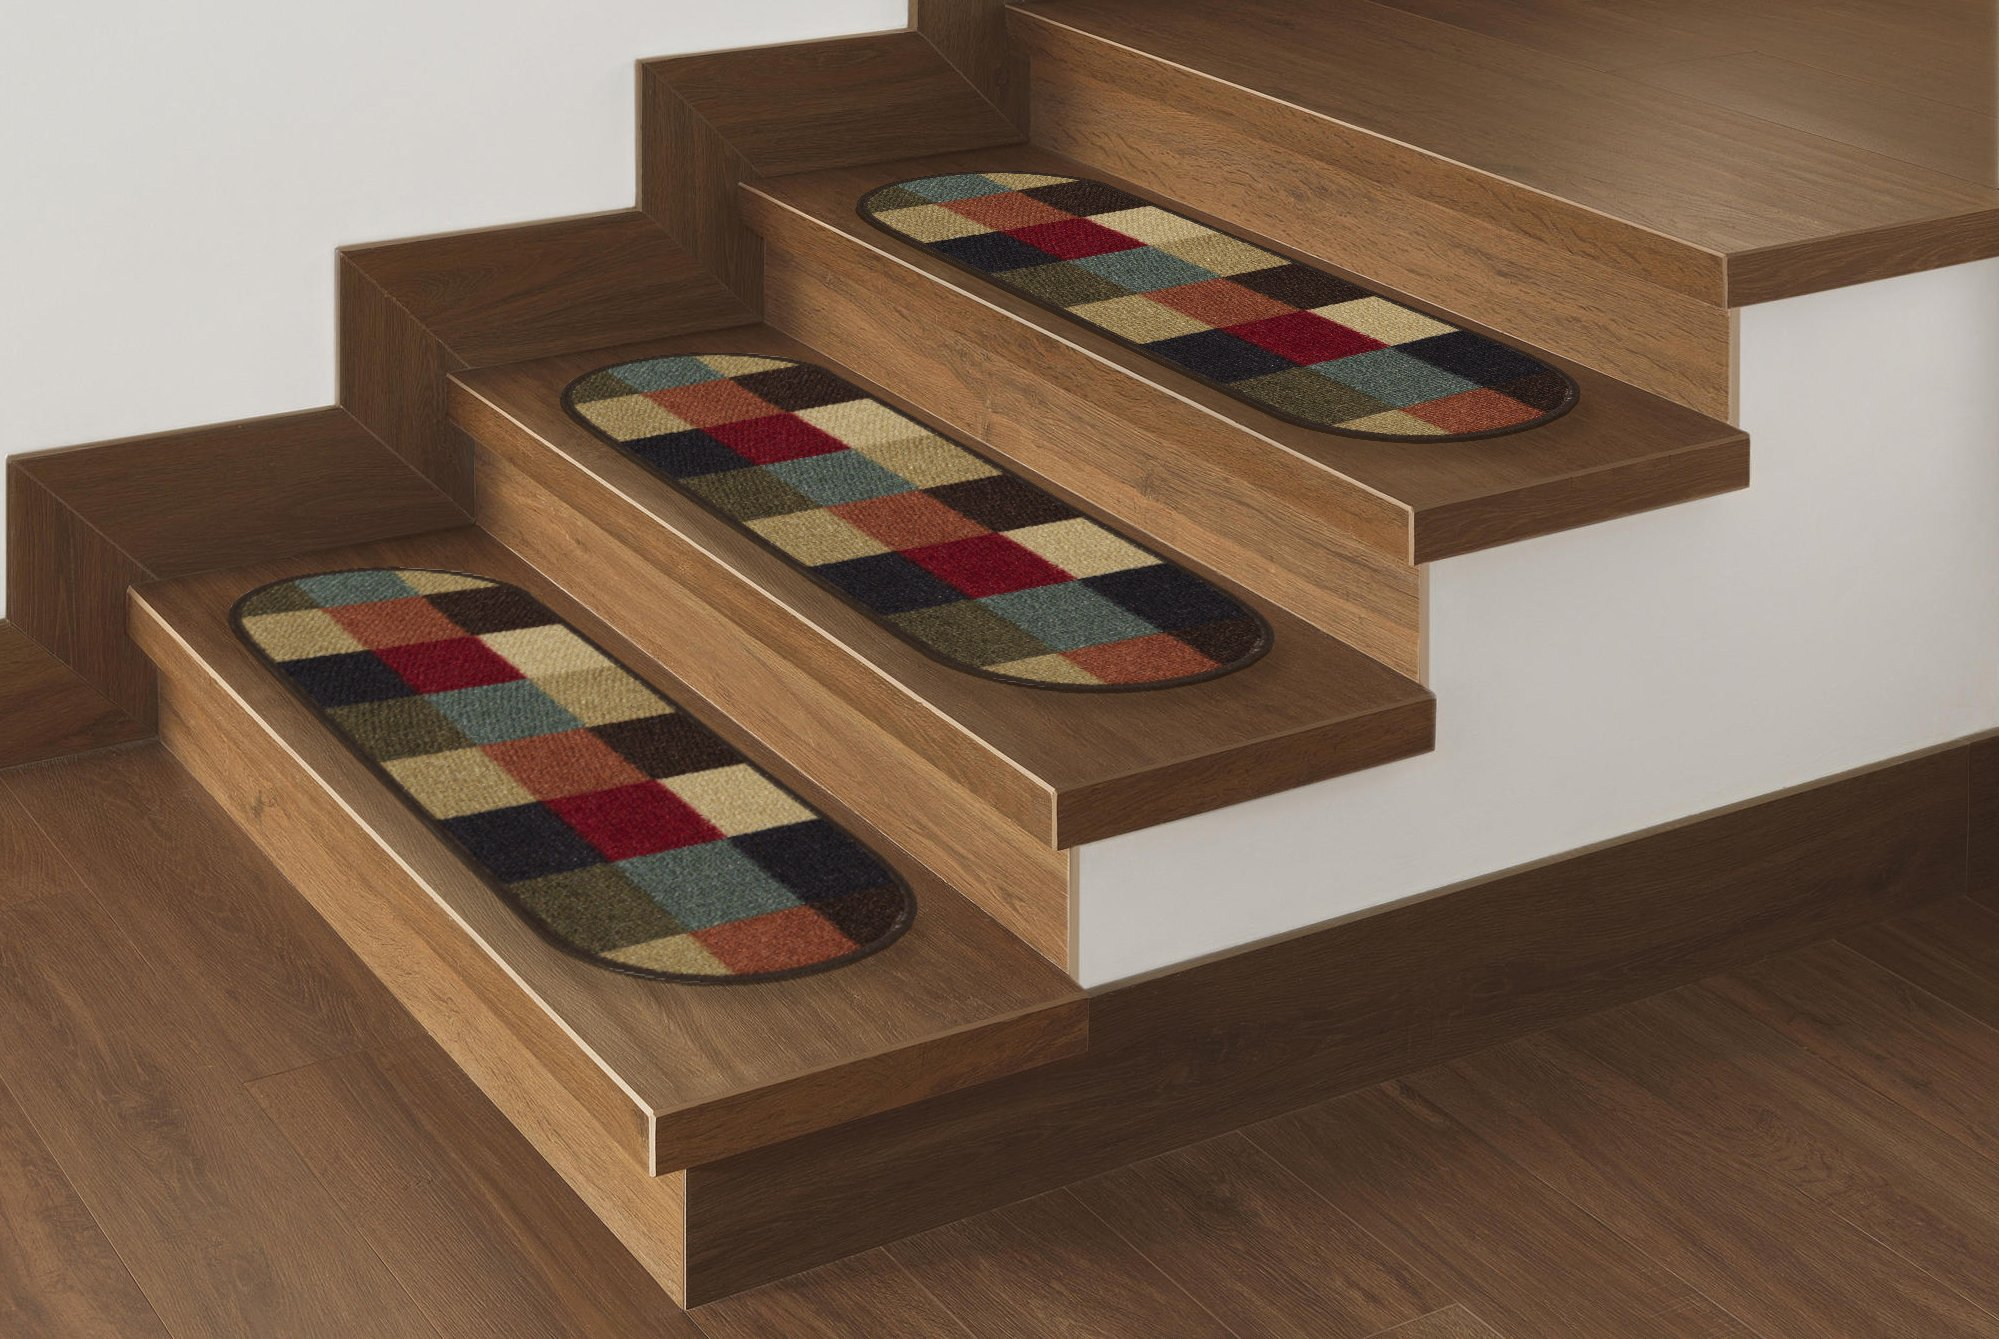 Ottomanson Ottohome Collection 7 Checker Stair Treads 8.5''X26'', 7 Pack Oval, Multicolor Checker